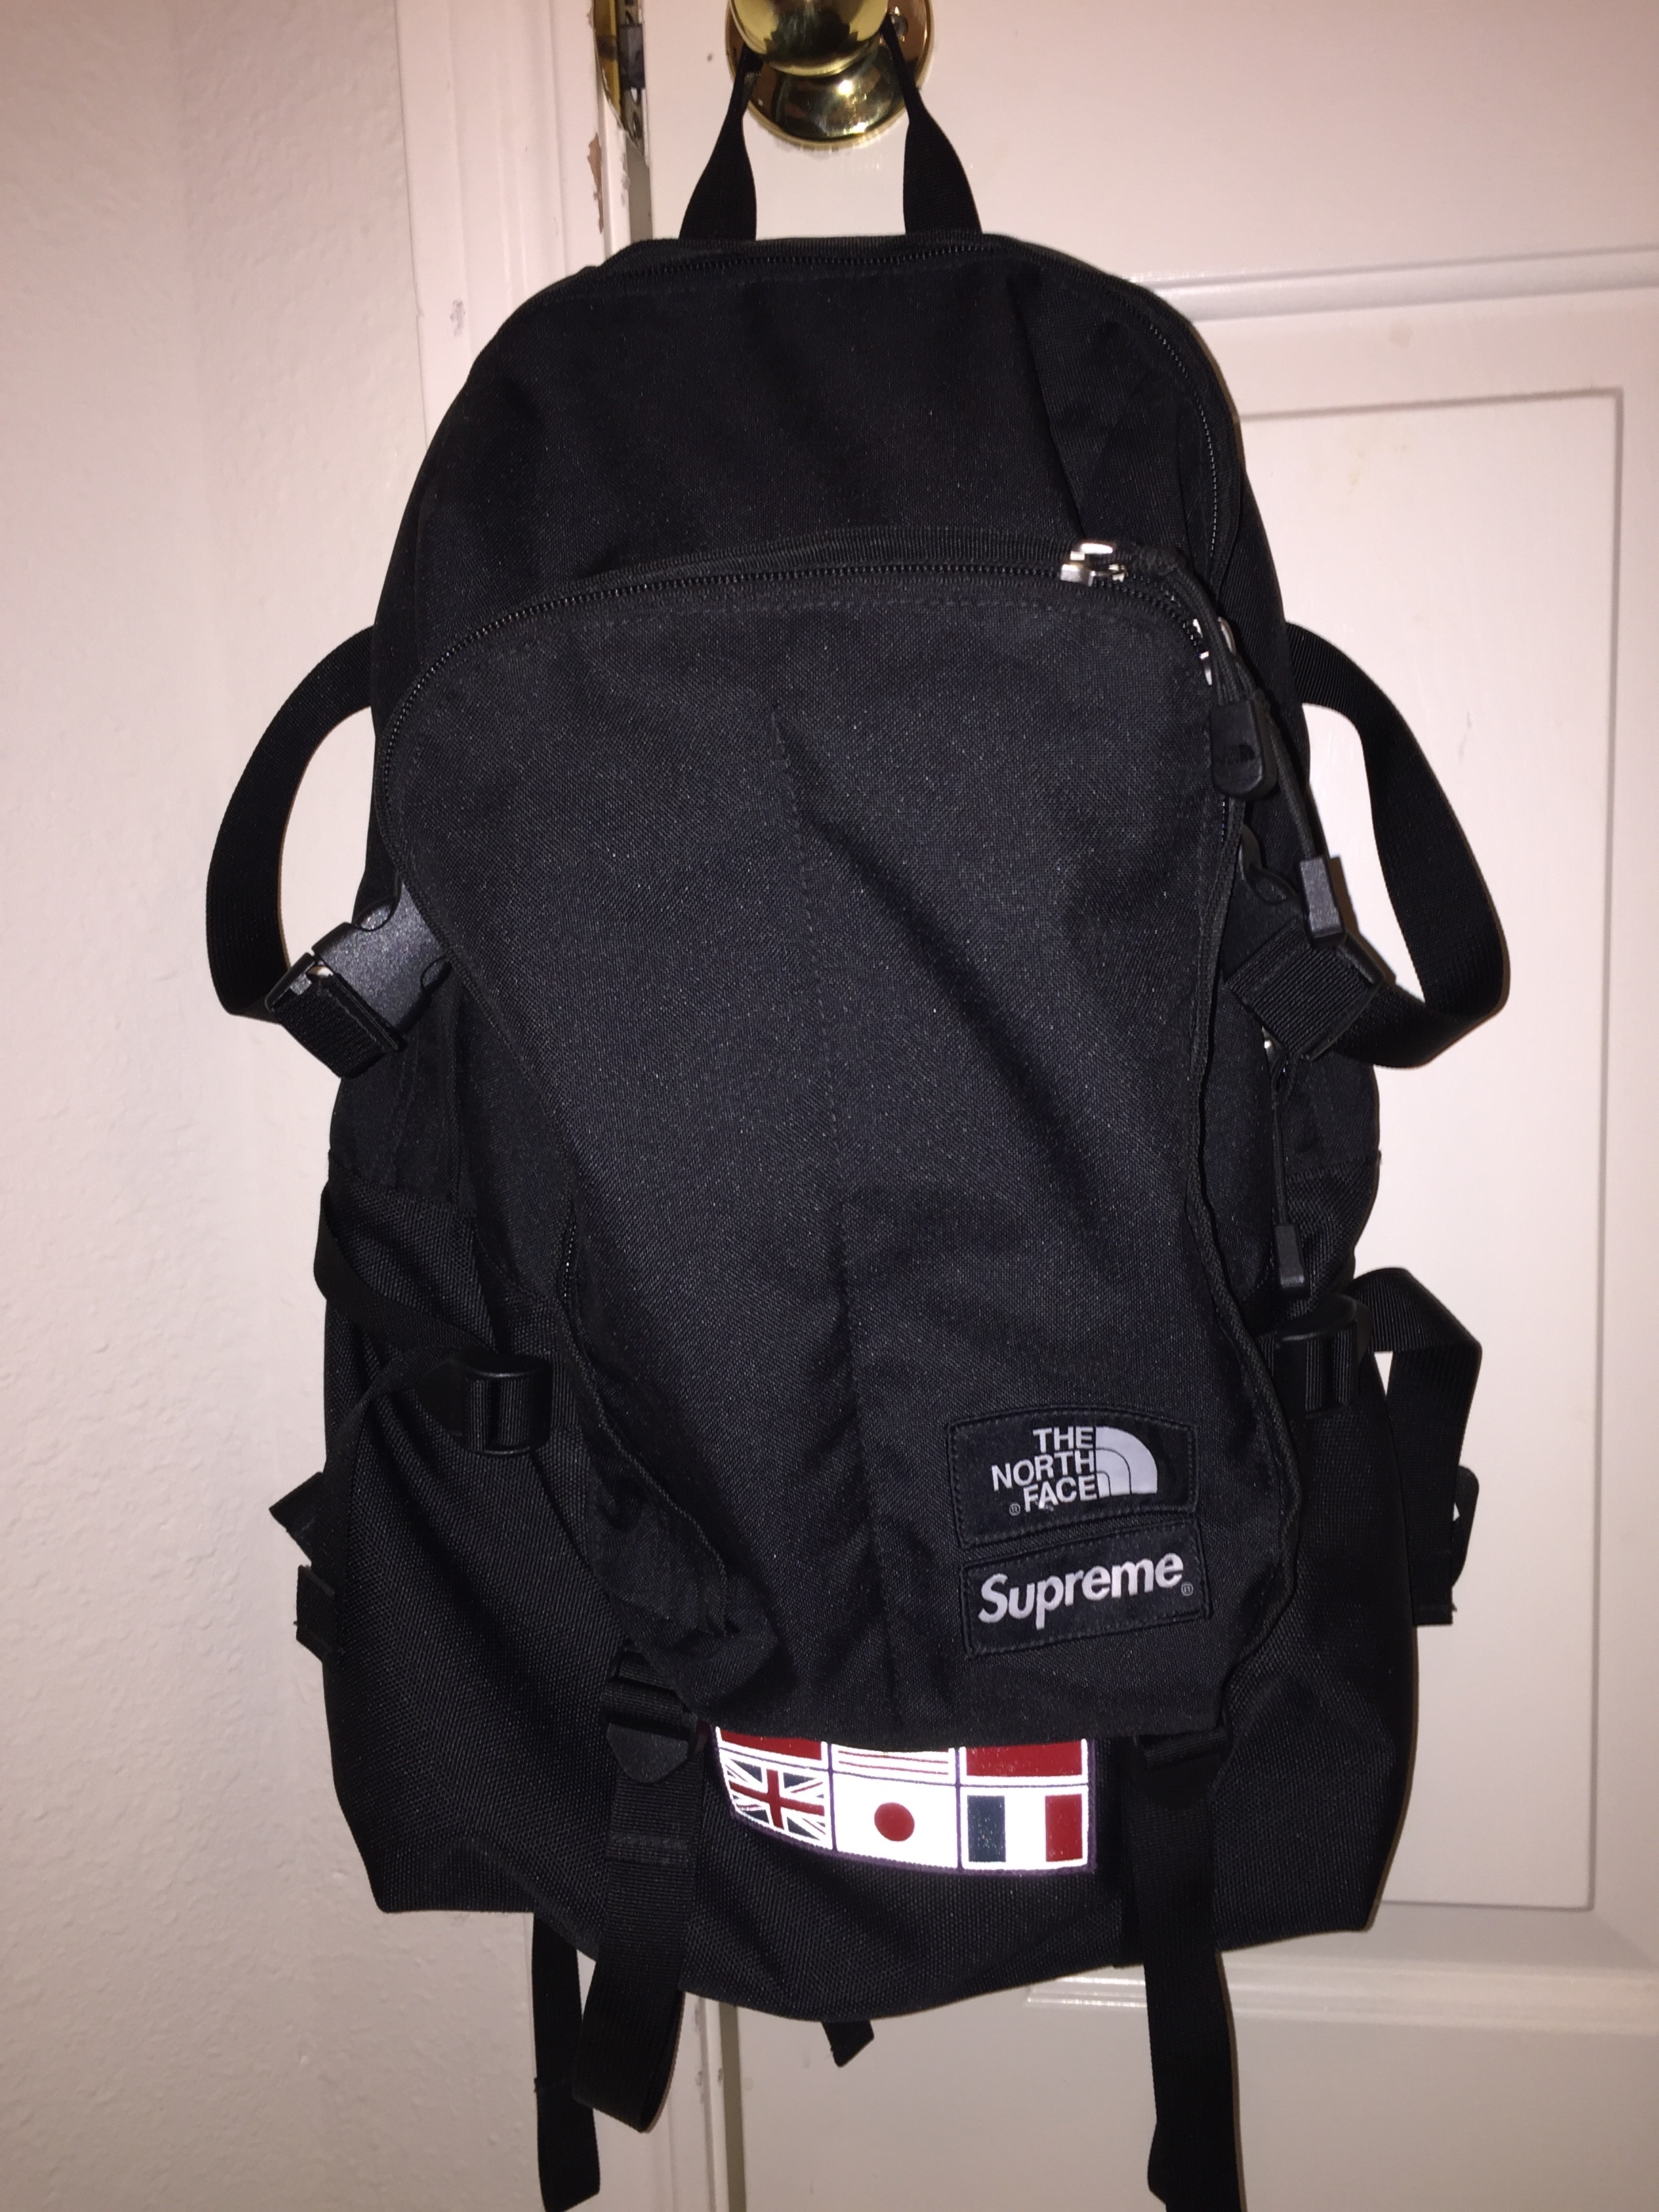 Supreme X North Face Backpack Size One Bags Luge For Grailed